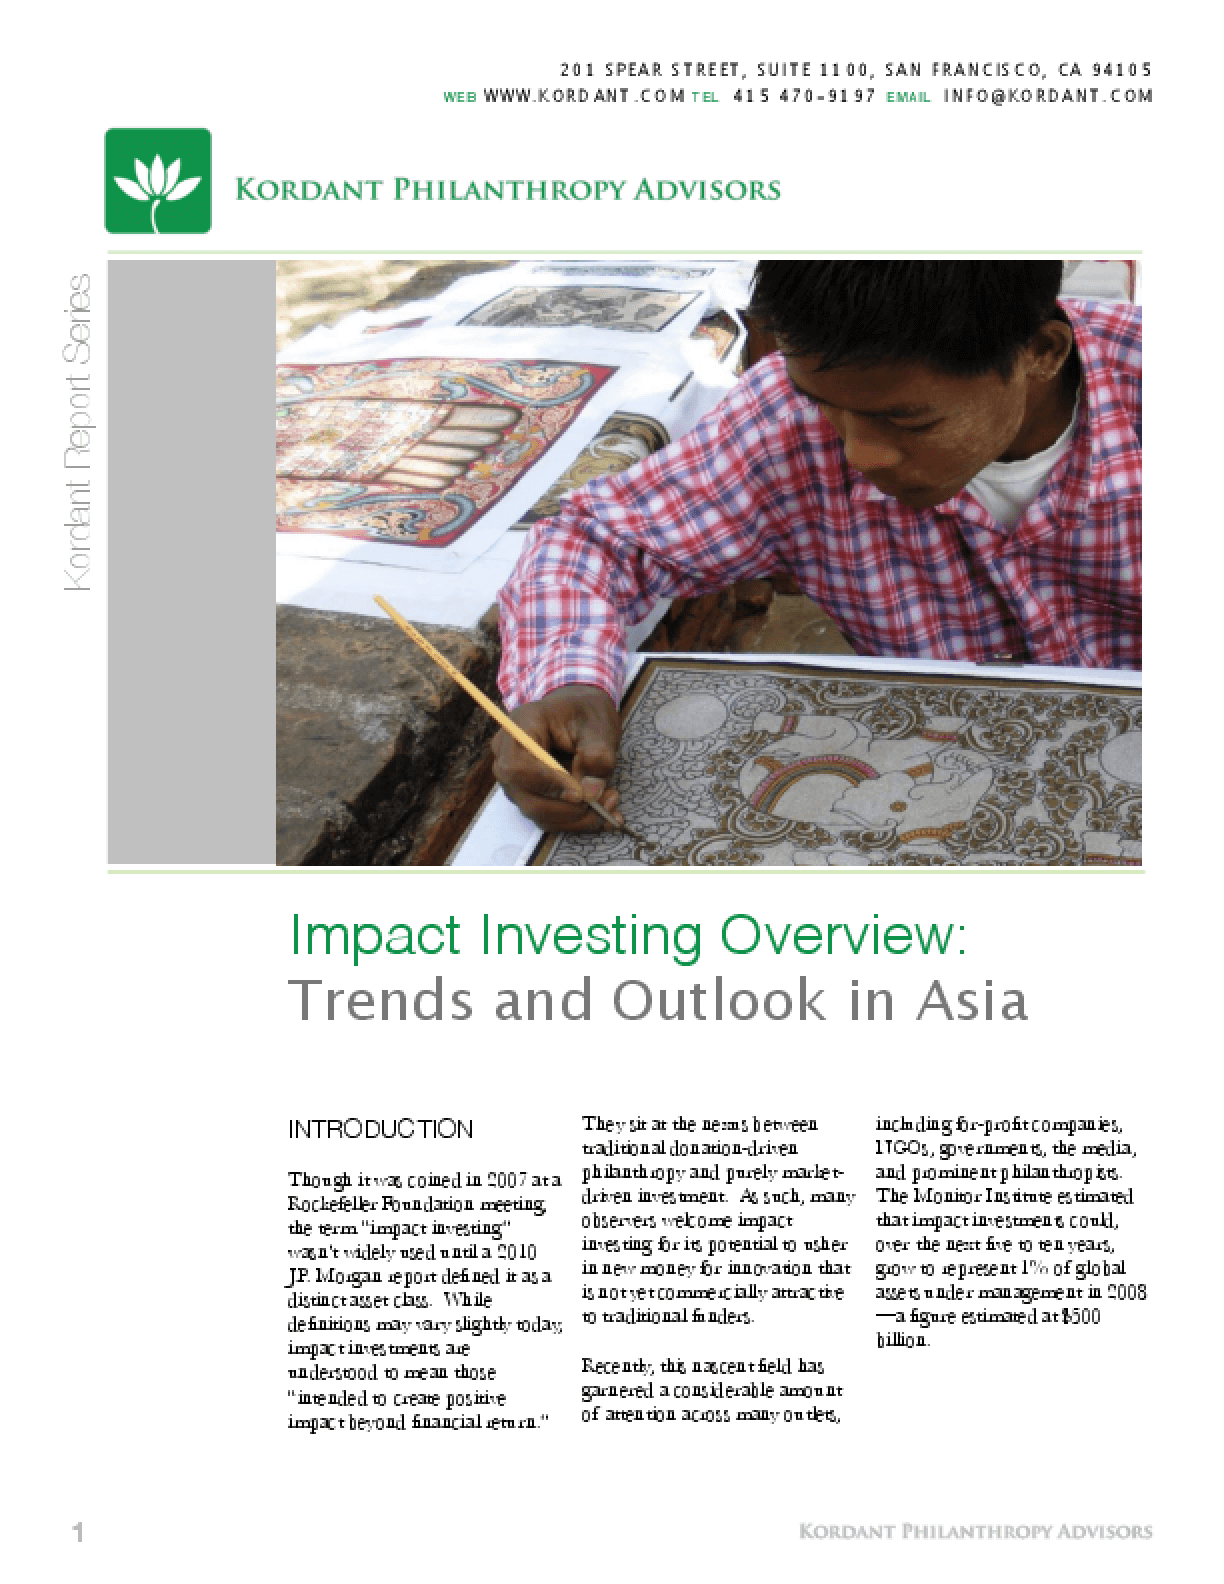 Impact Investing: Trends and Outlook in Asia